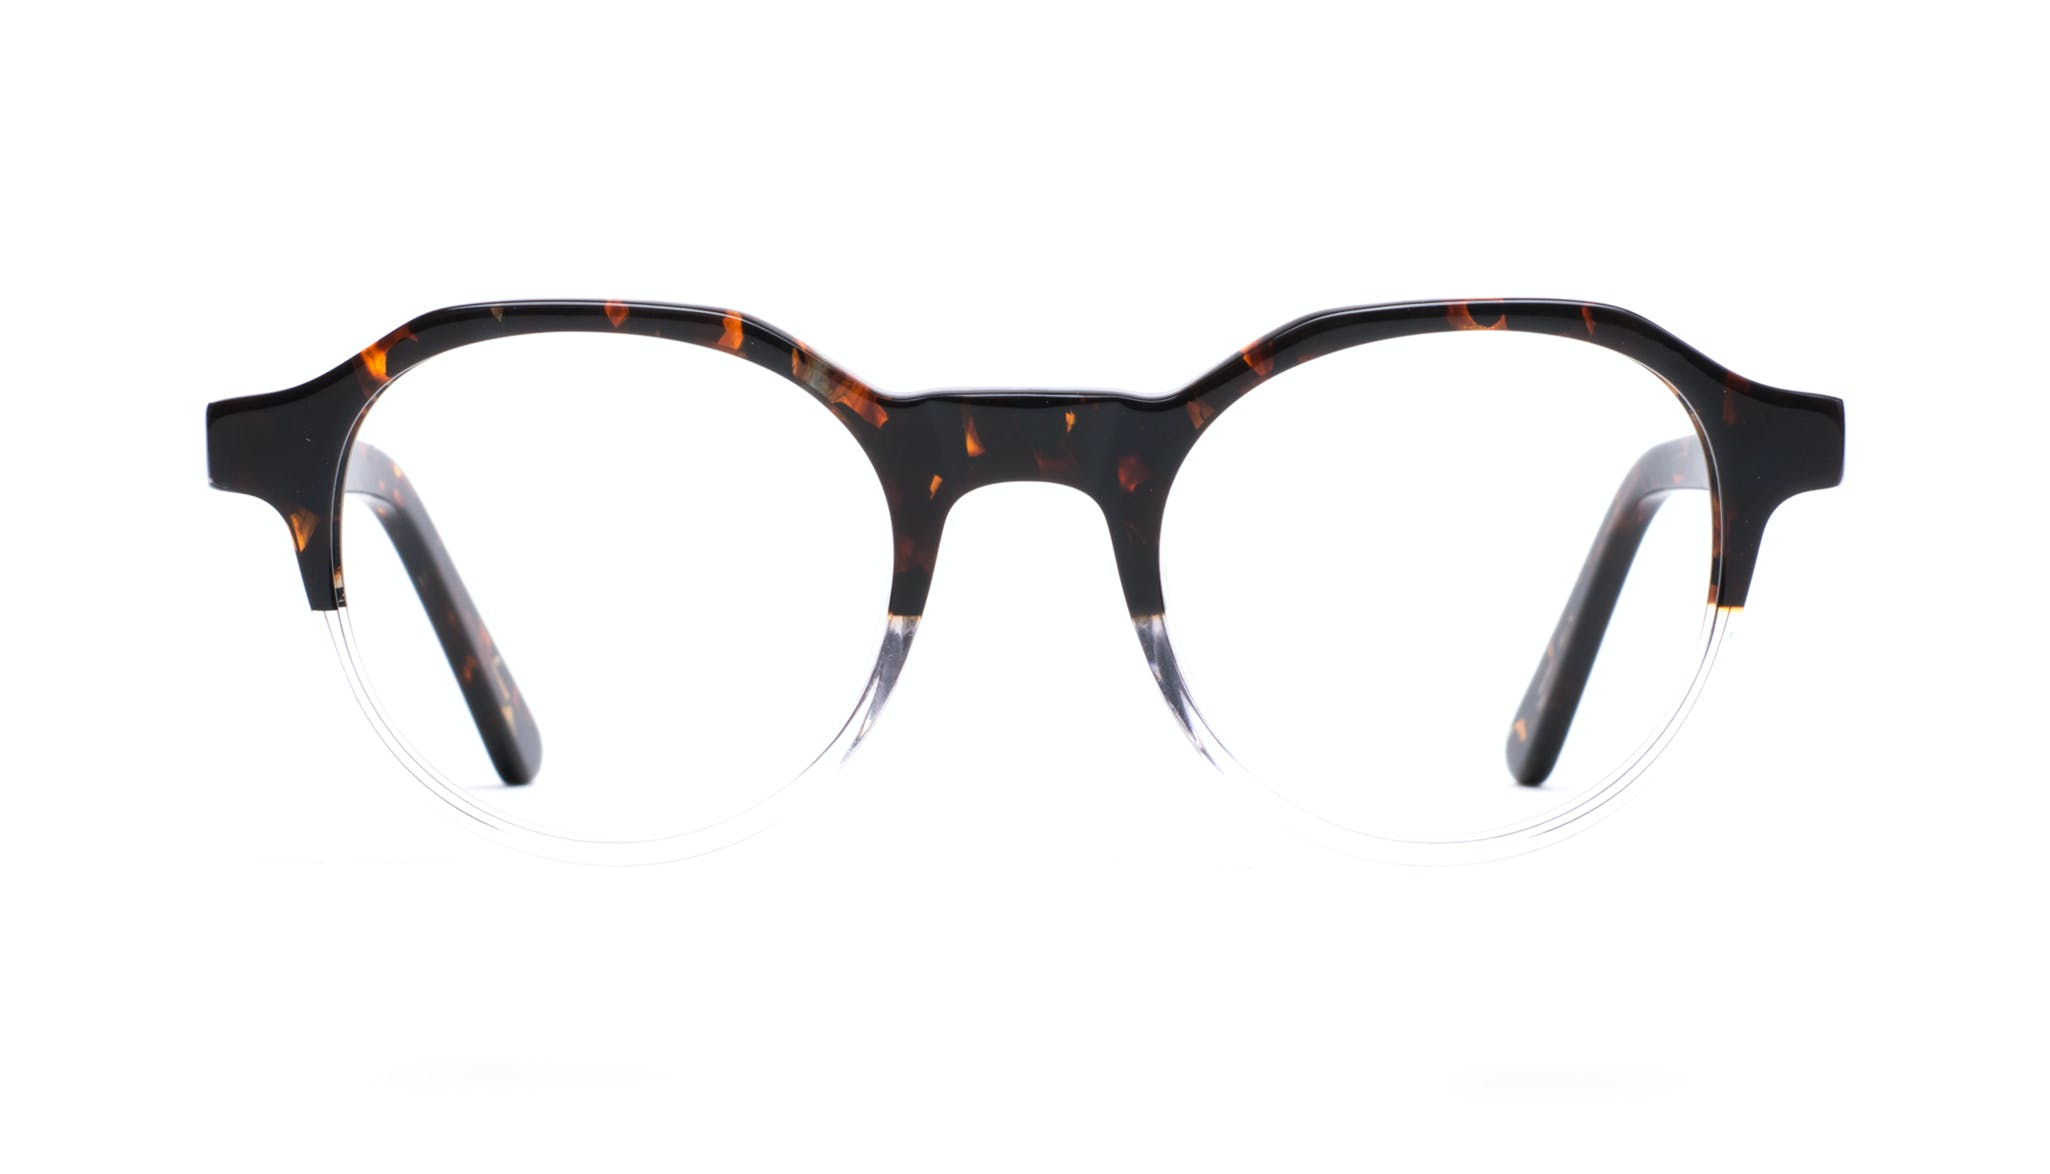 Affordable Fashion Glasses Round Eyeglasses Men Form Mahogany Clear